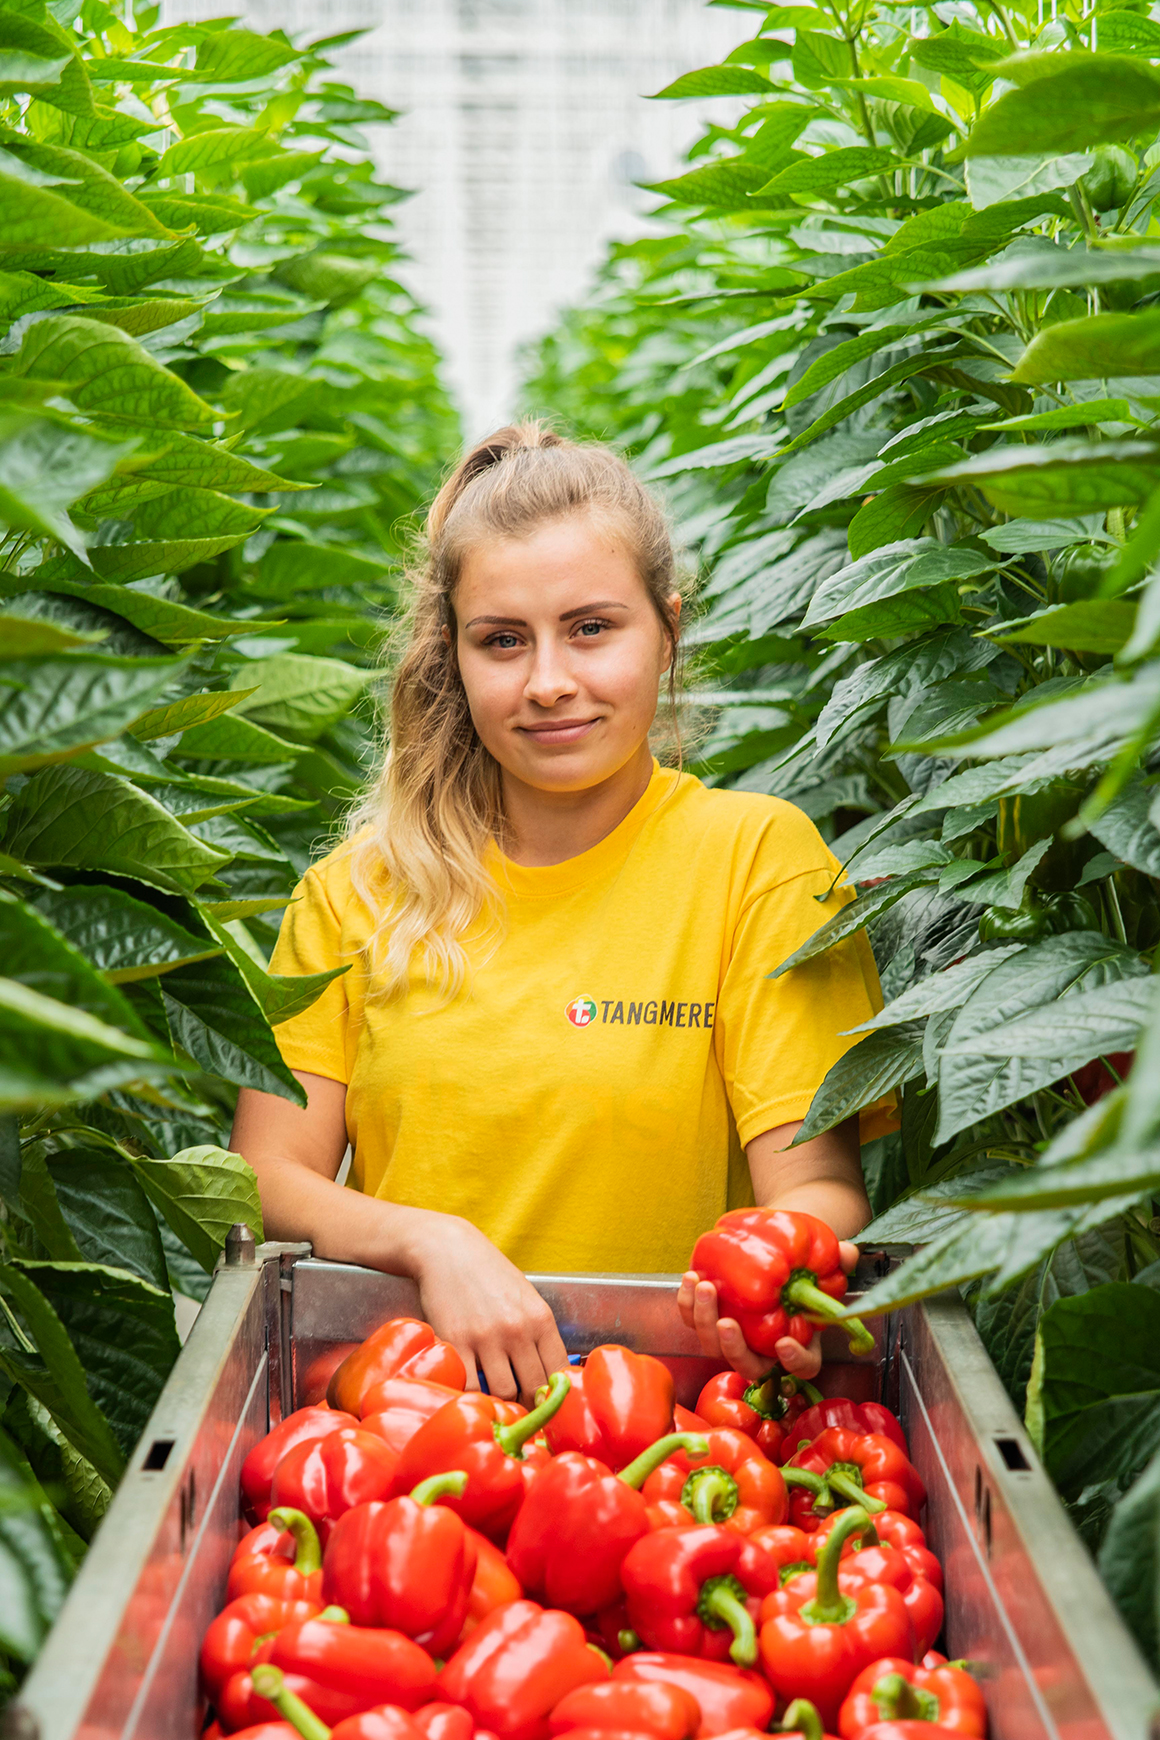 A female employee wearing a yellow tshirt with a full picking bin or red bell peppers.